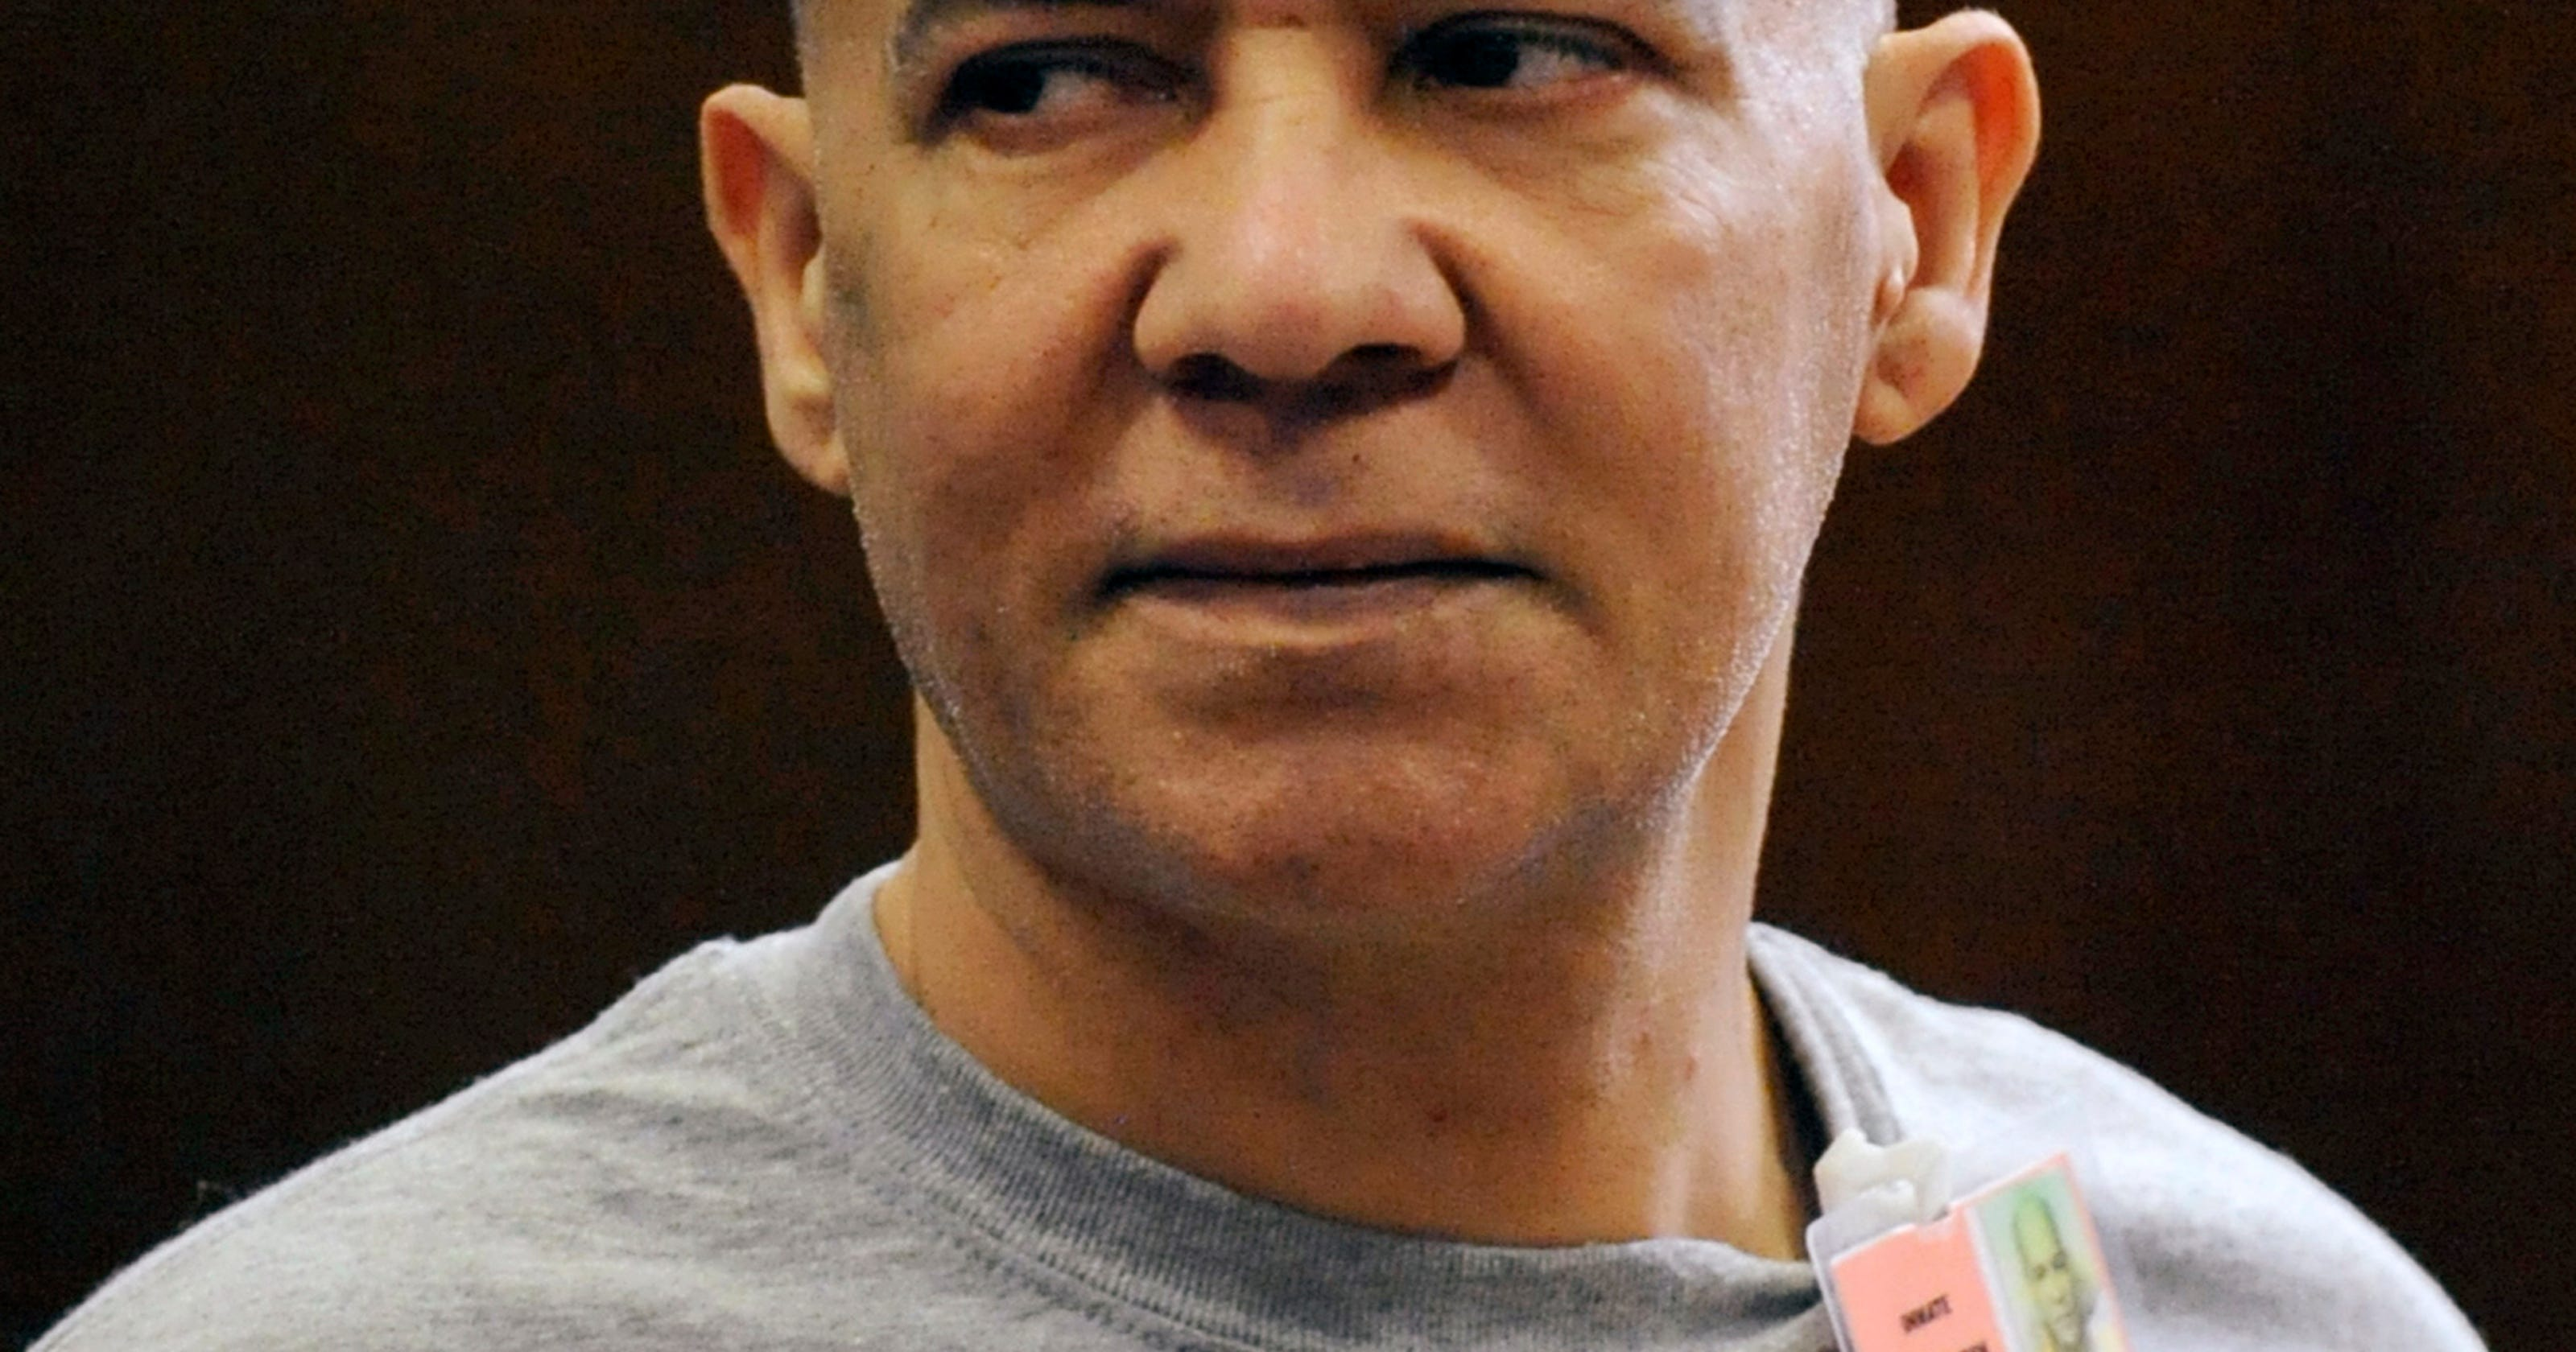 Jury selection starts Monday in Hernandez trial